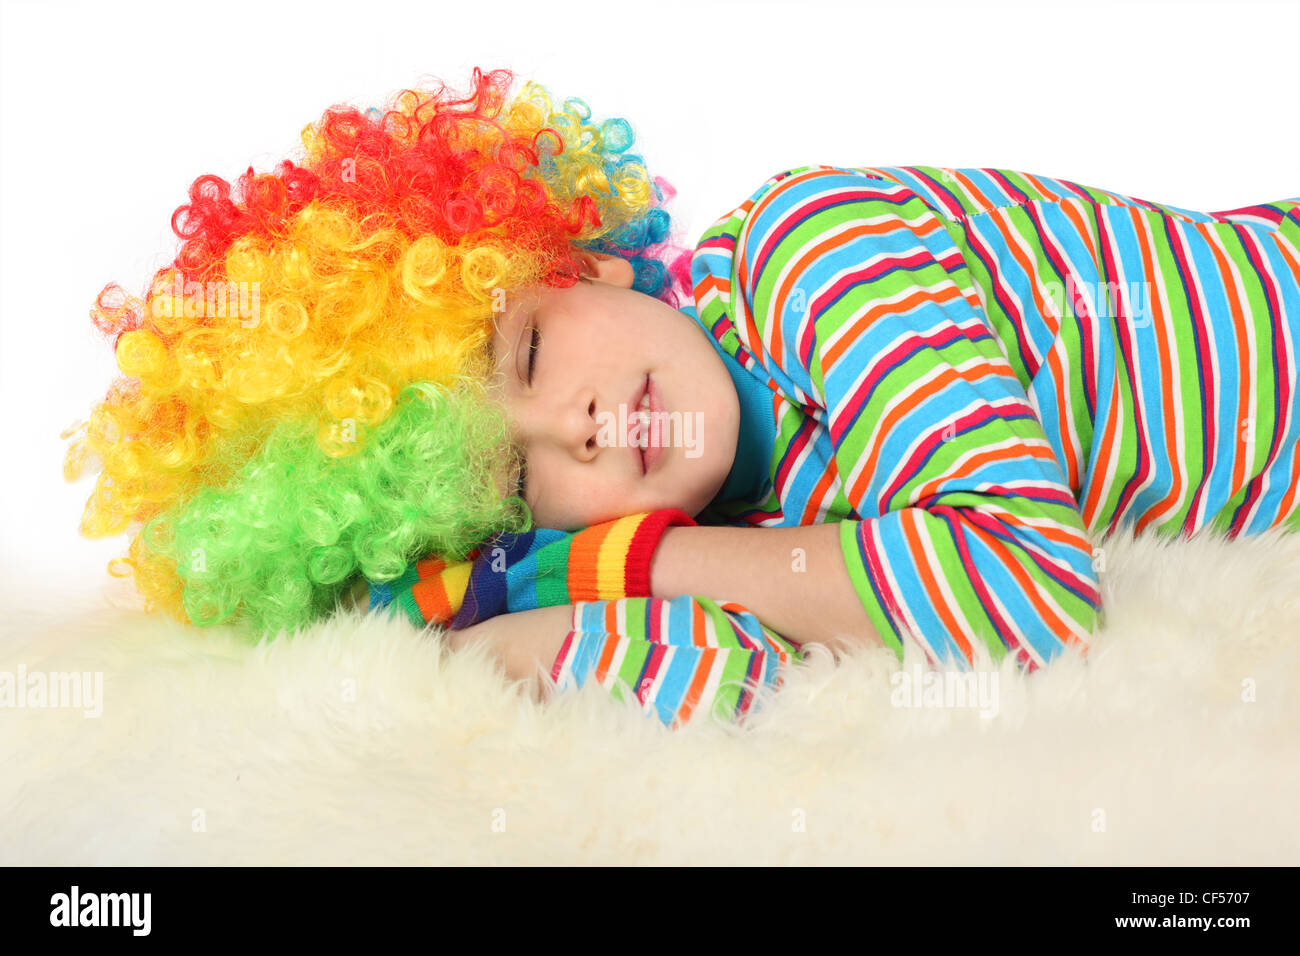 boy in clown dress sleeping isolated on white background Stock Photo